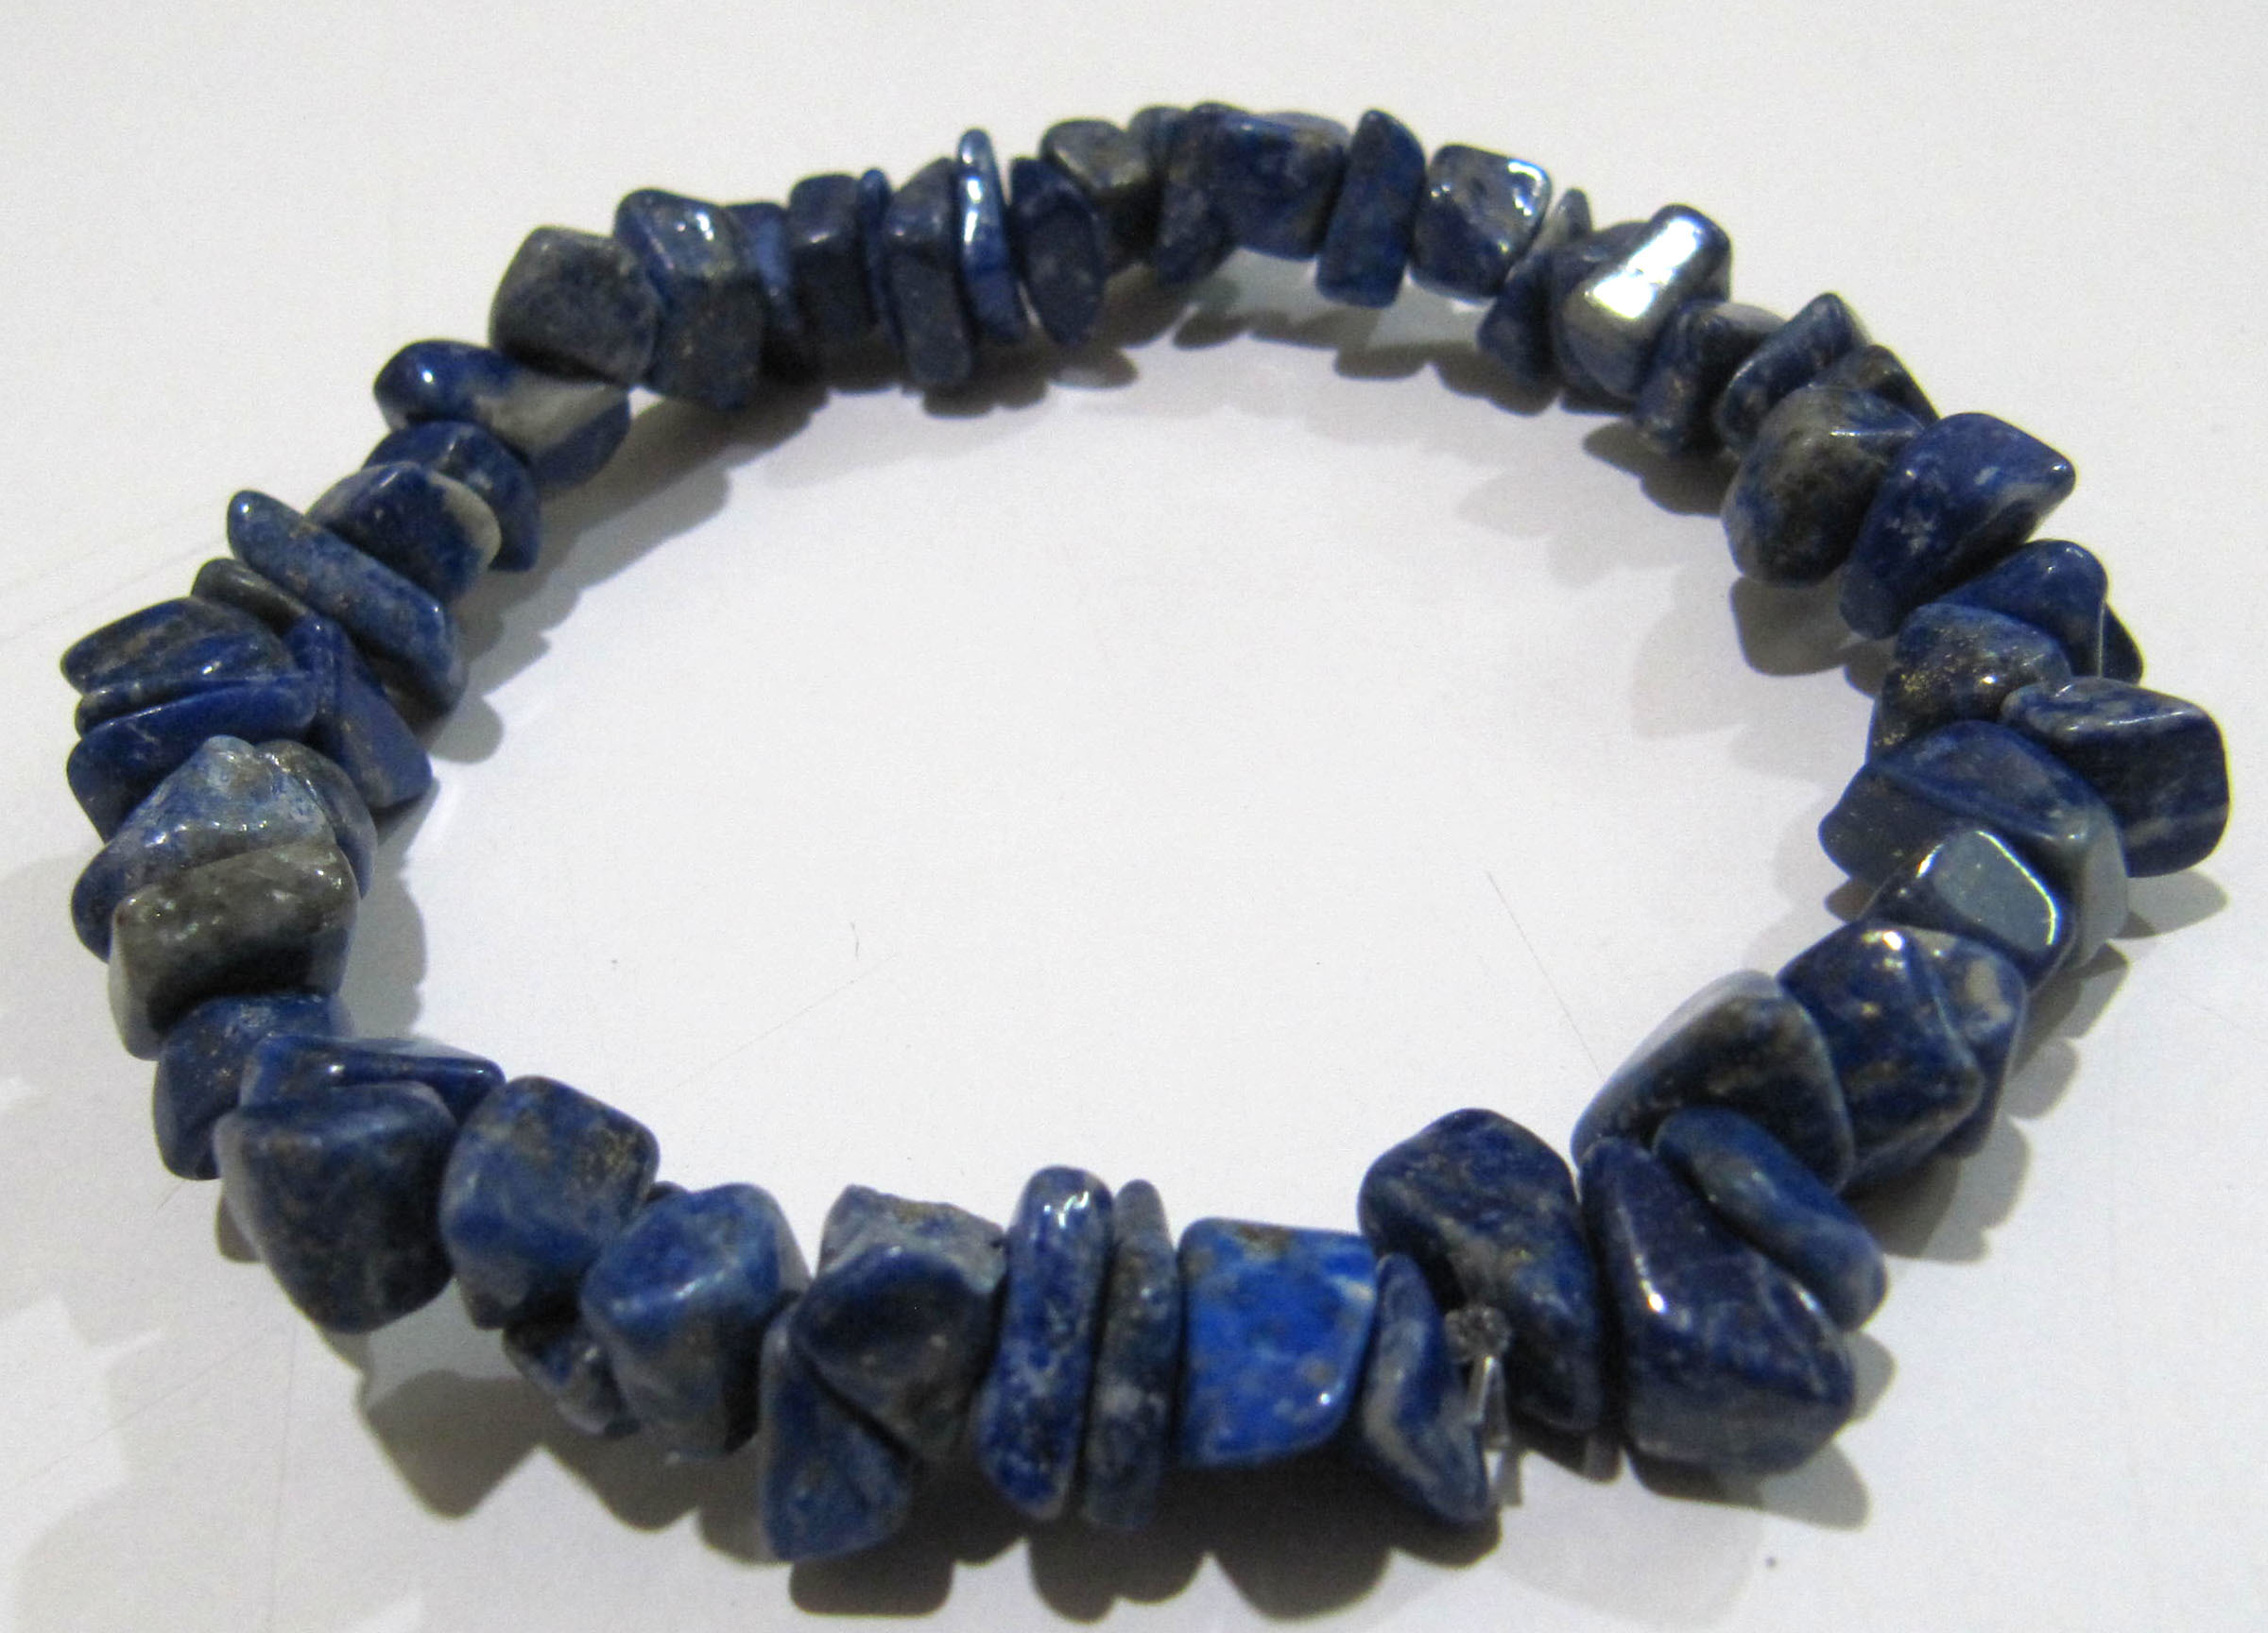 Natural Lapis Lazuli Chip Bracelet Gravel Uncut Nugget 6mm To 9mm